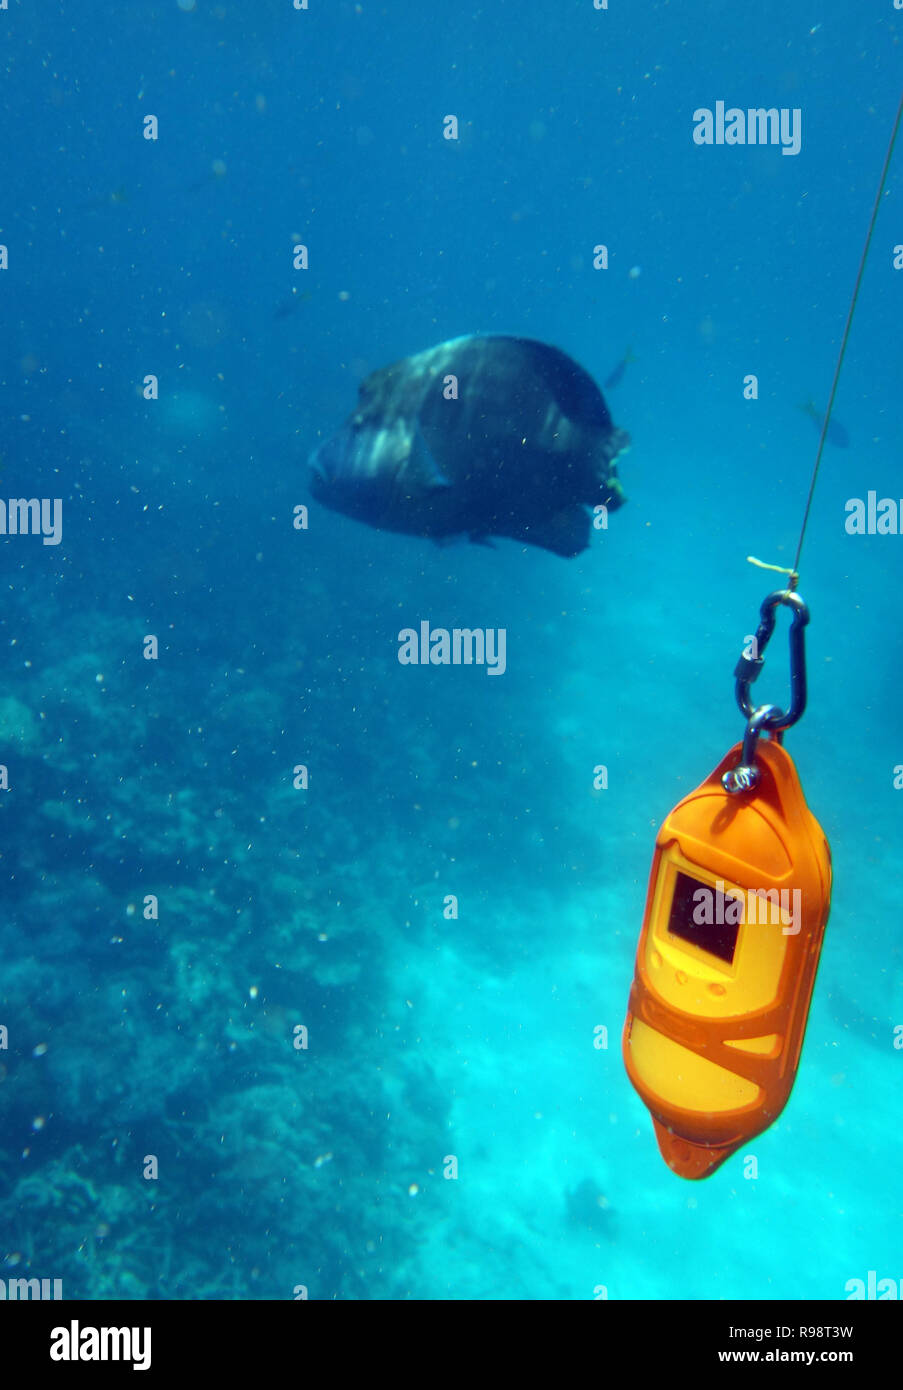 Oceanographic instrument measuring temperature, conductivity and salinity on coral reef with uninterested maori wrasse in background, Great Barrier Re - Stock Image